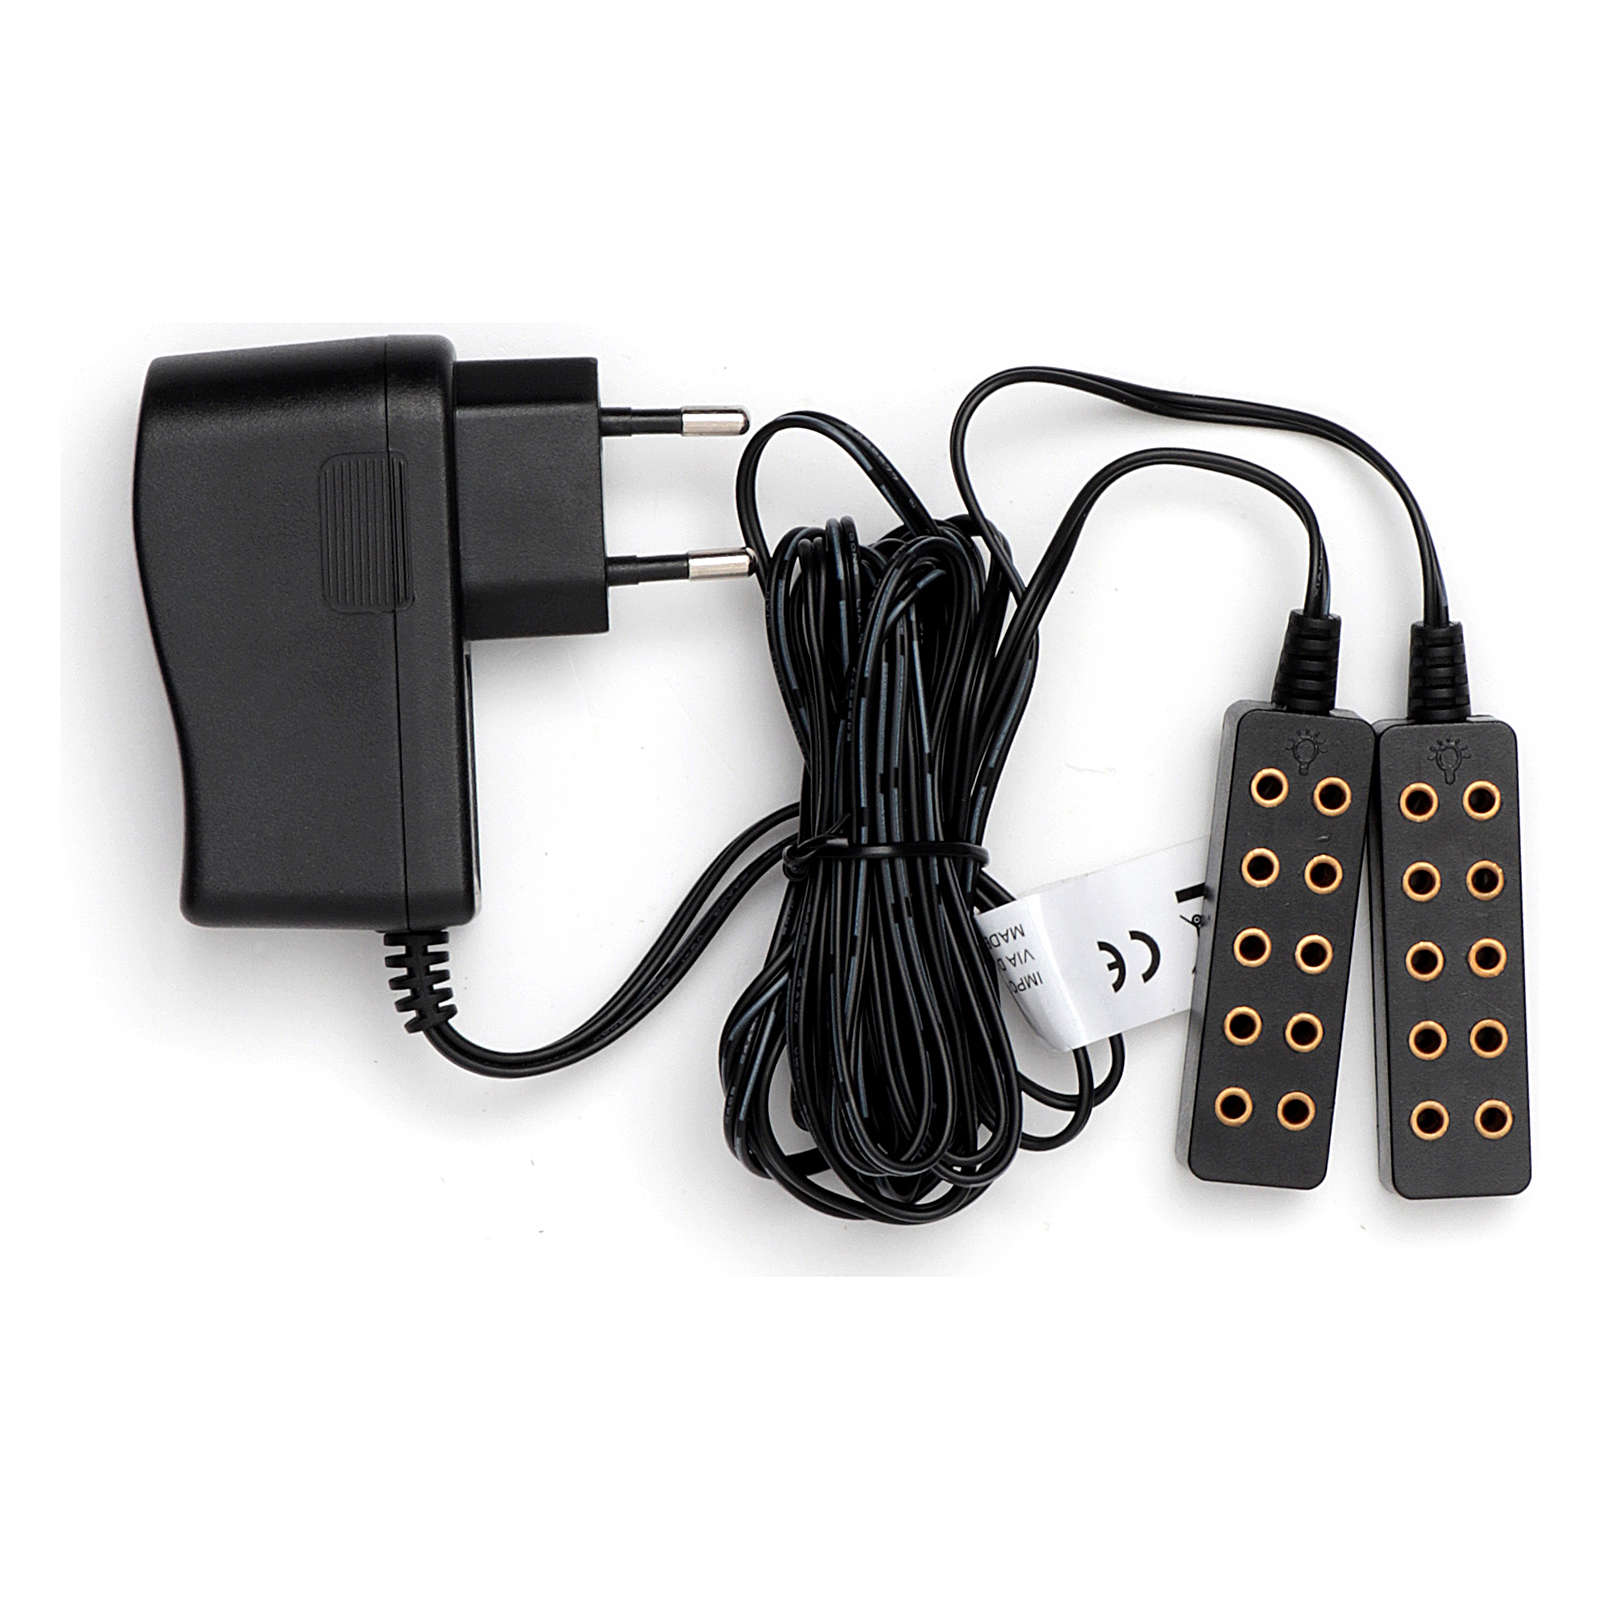 Double power strip for transformer 190 cm low voltage cable 4